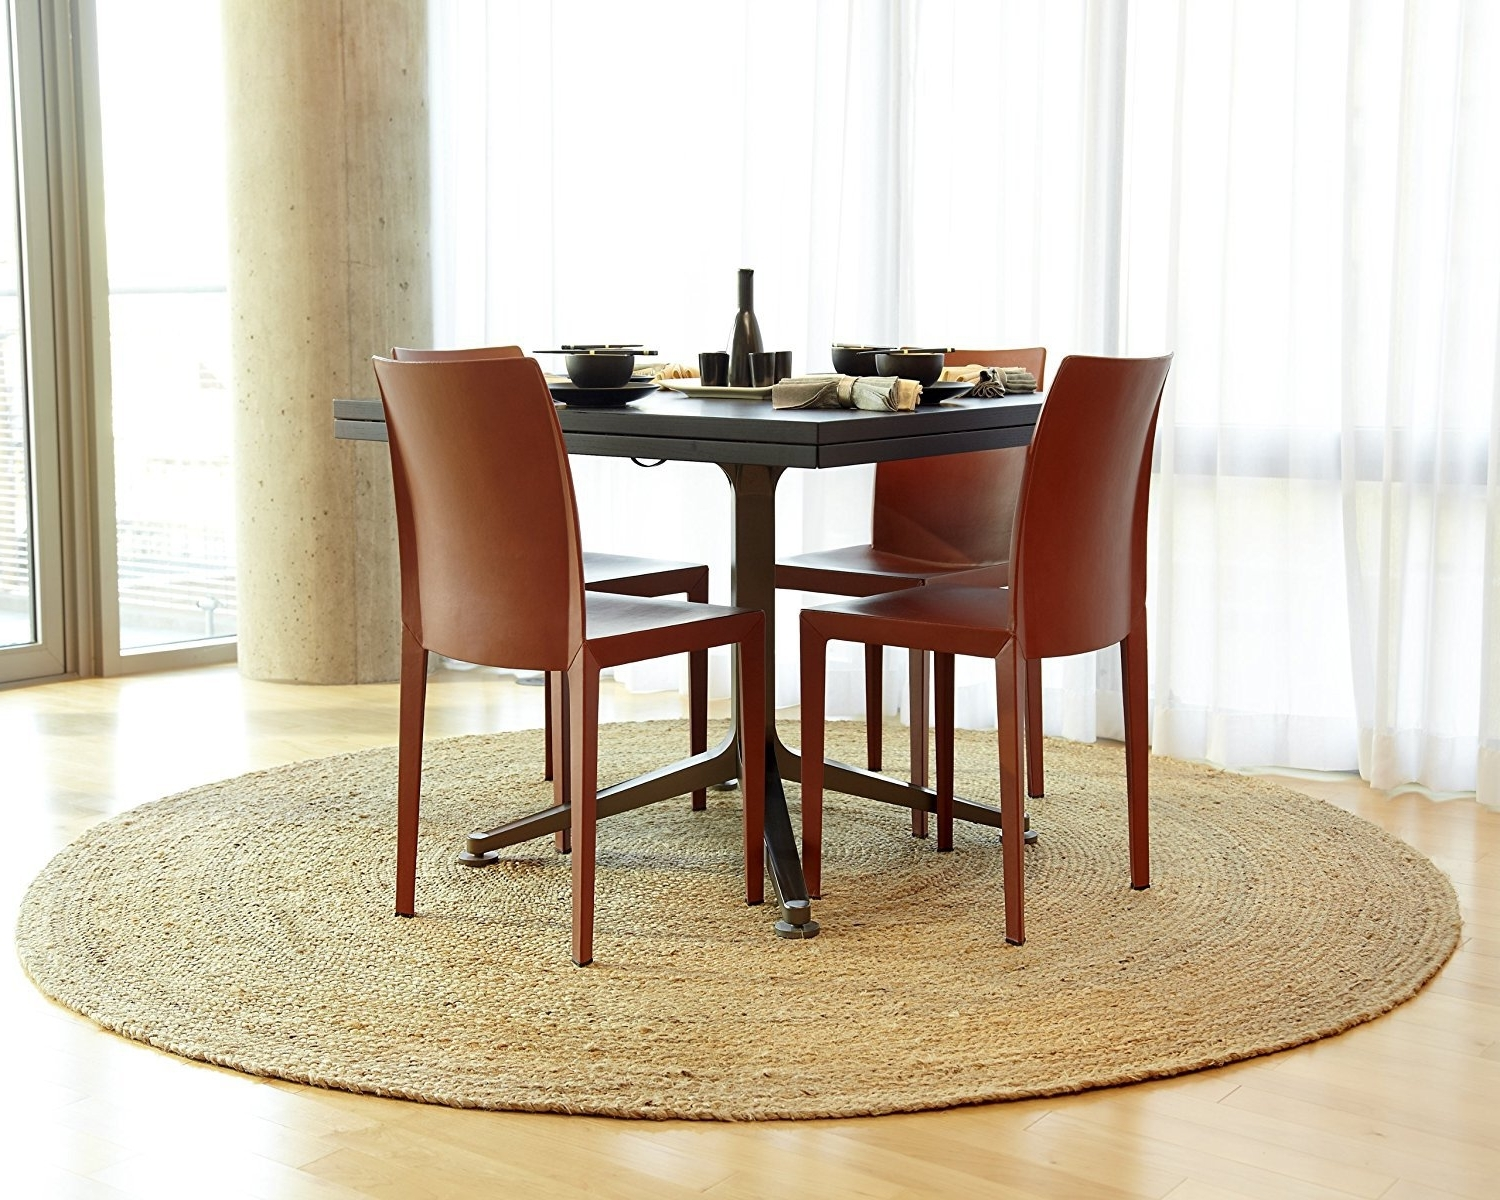 Caden Round Dining Tables Intended For Most Current Gray Decor Round Seagrass Rug Room Design Casual Motif Seagrass Rug (View 2 of 25)